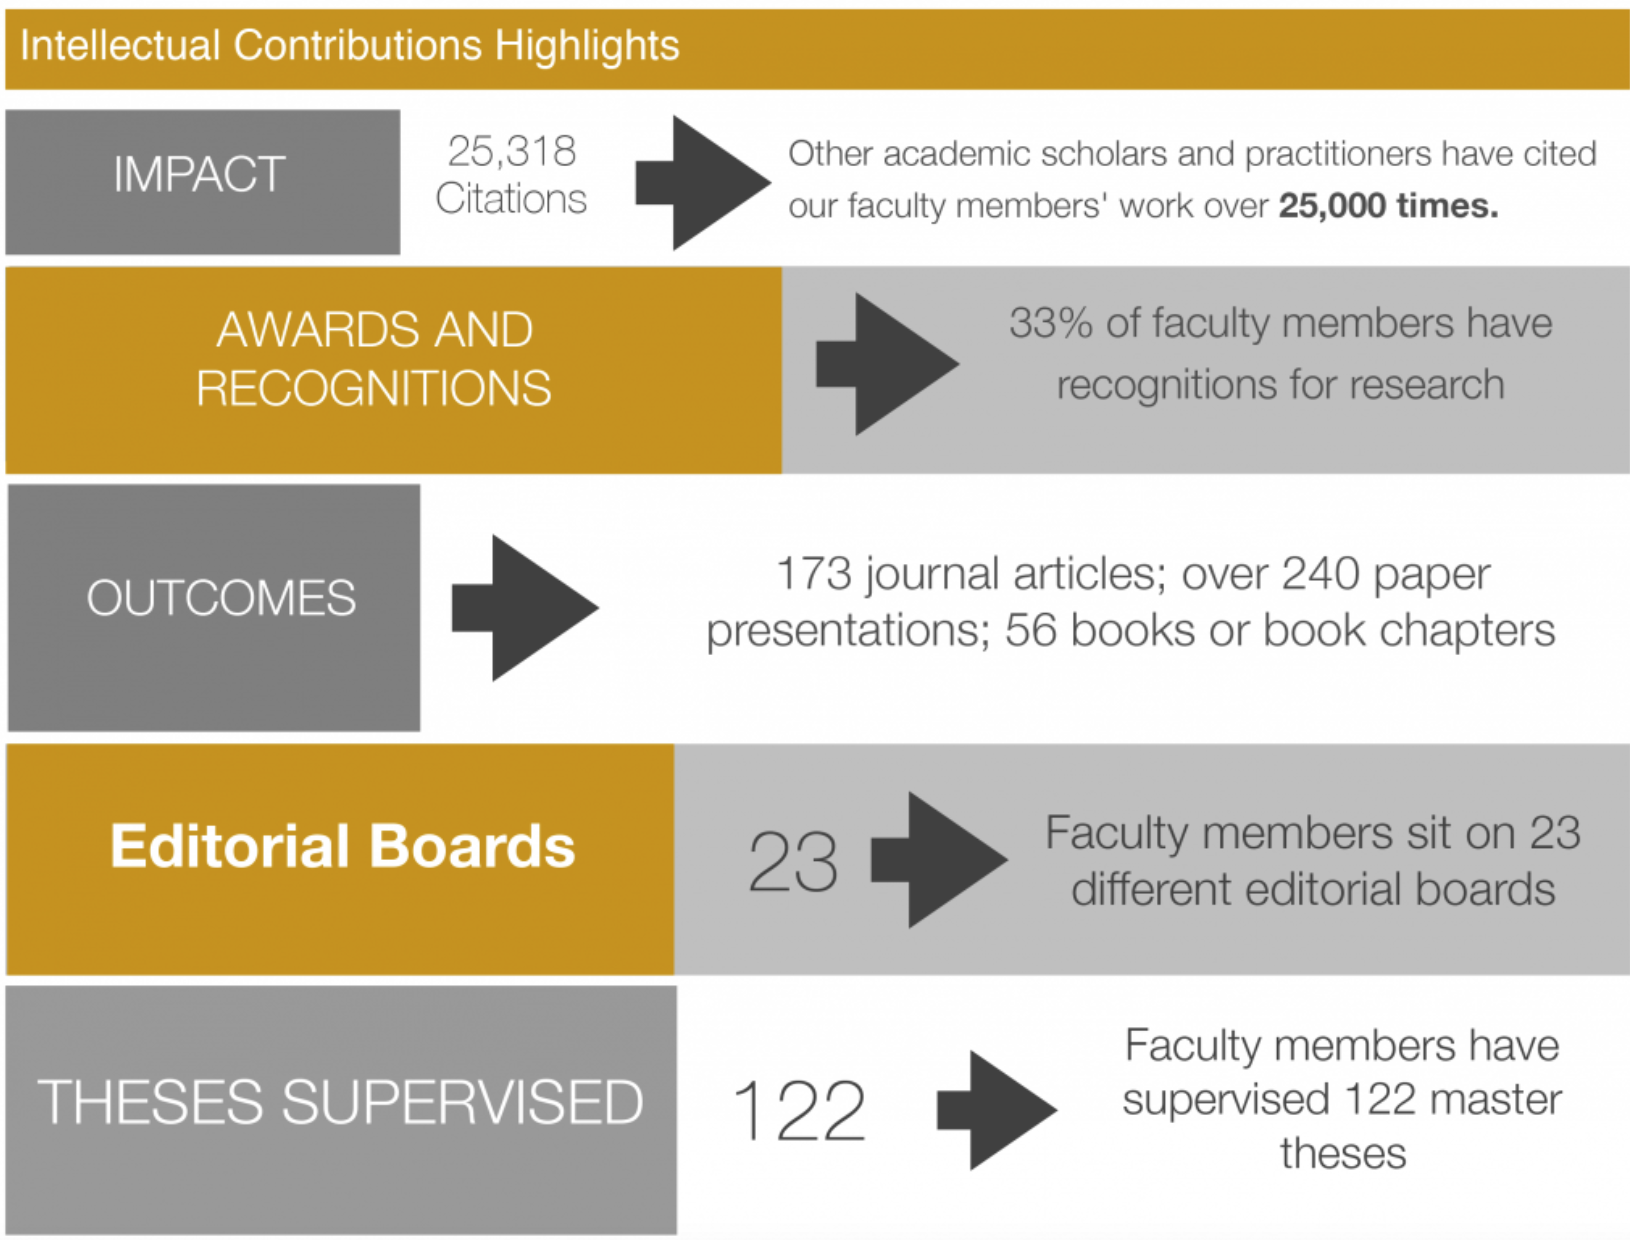 DSB faculty intellectual contributions